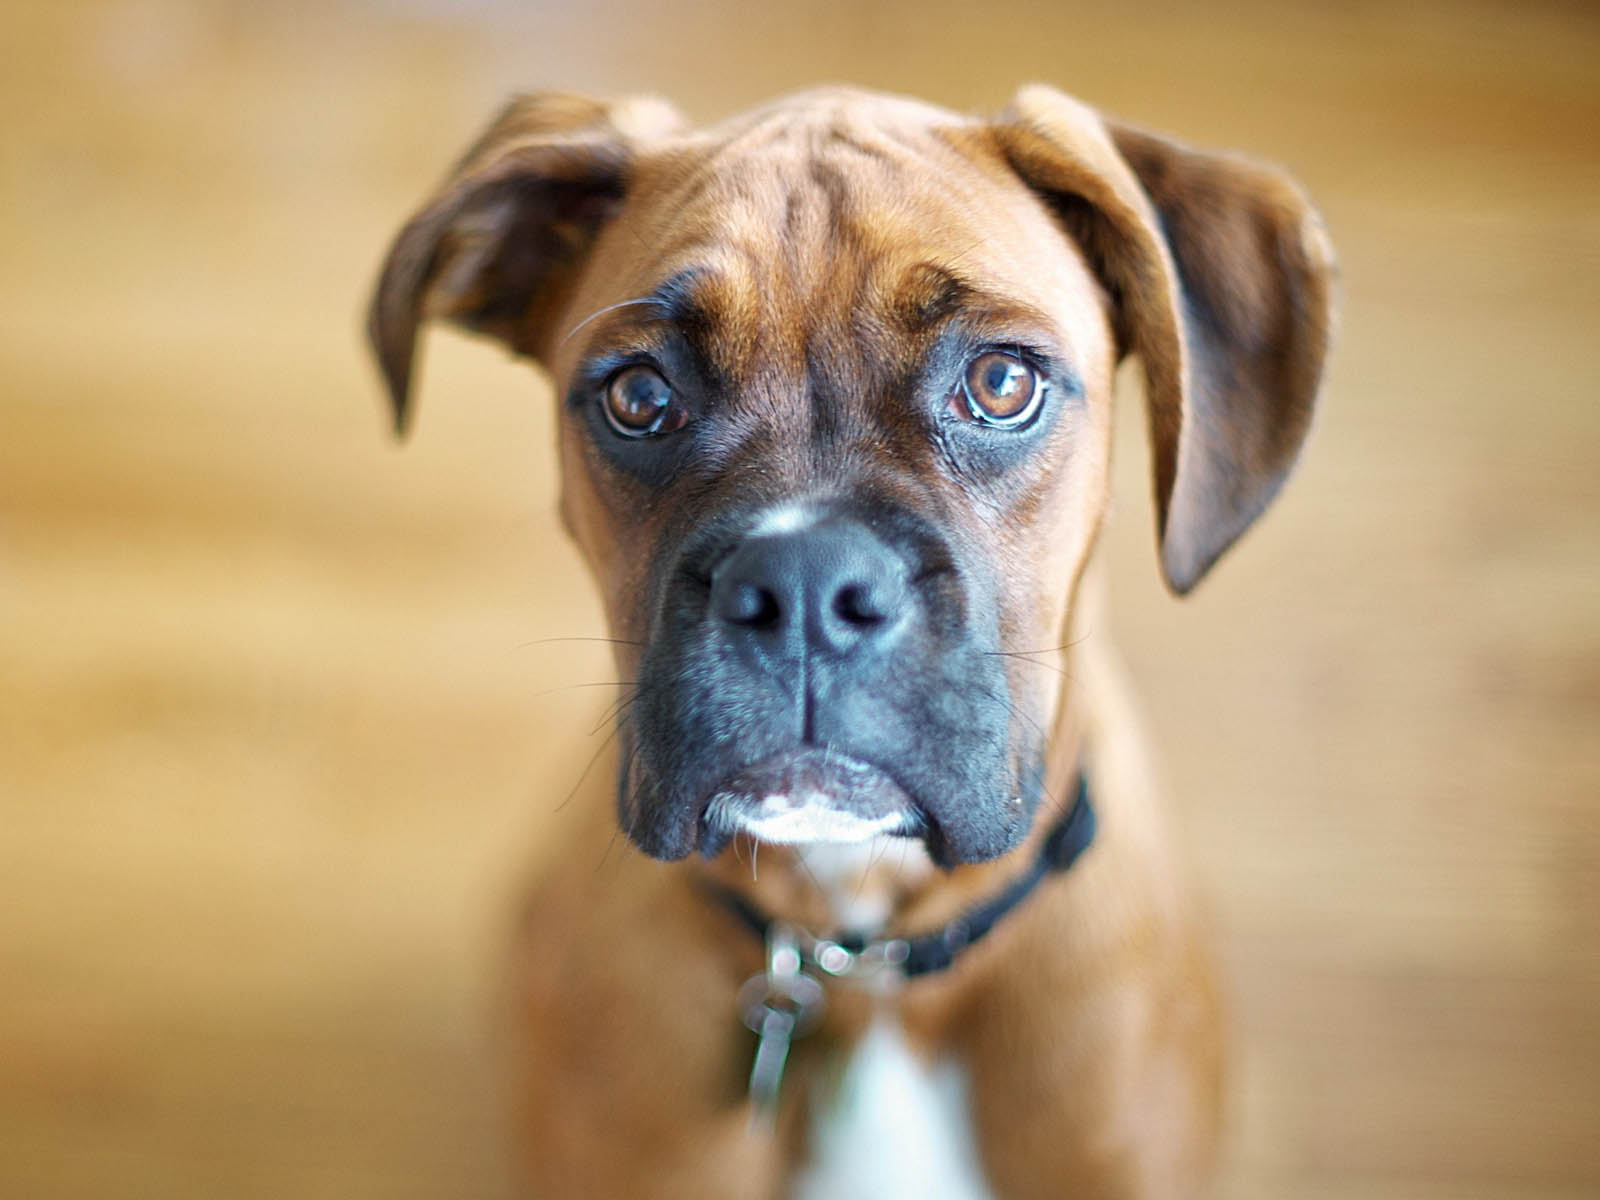 Cute Puppies Wallpaper Backgrounds Wallpapers Boxer Dog Wallpapers